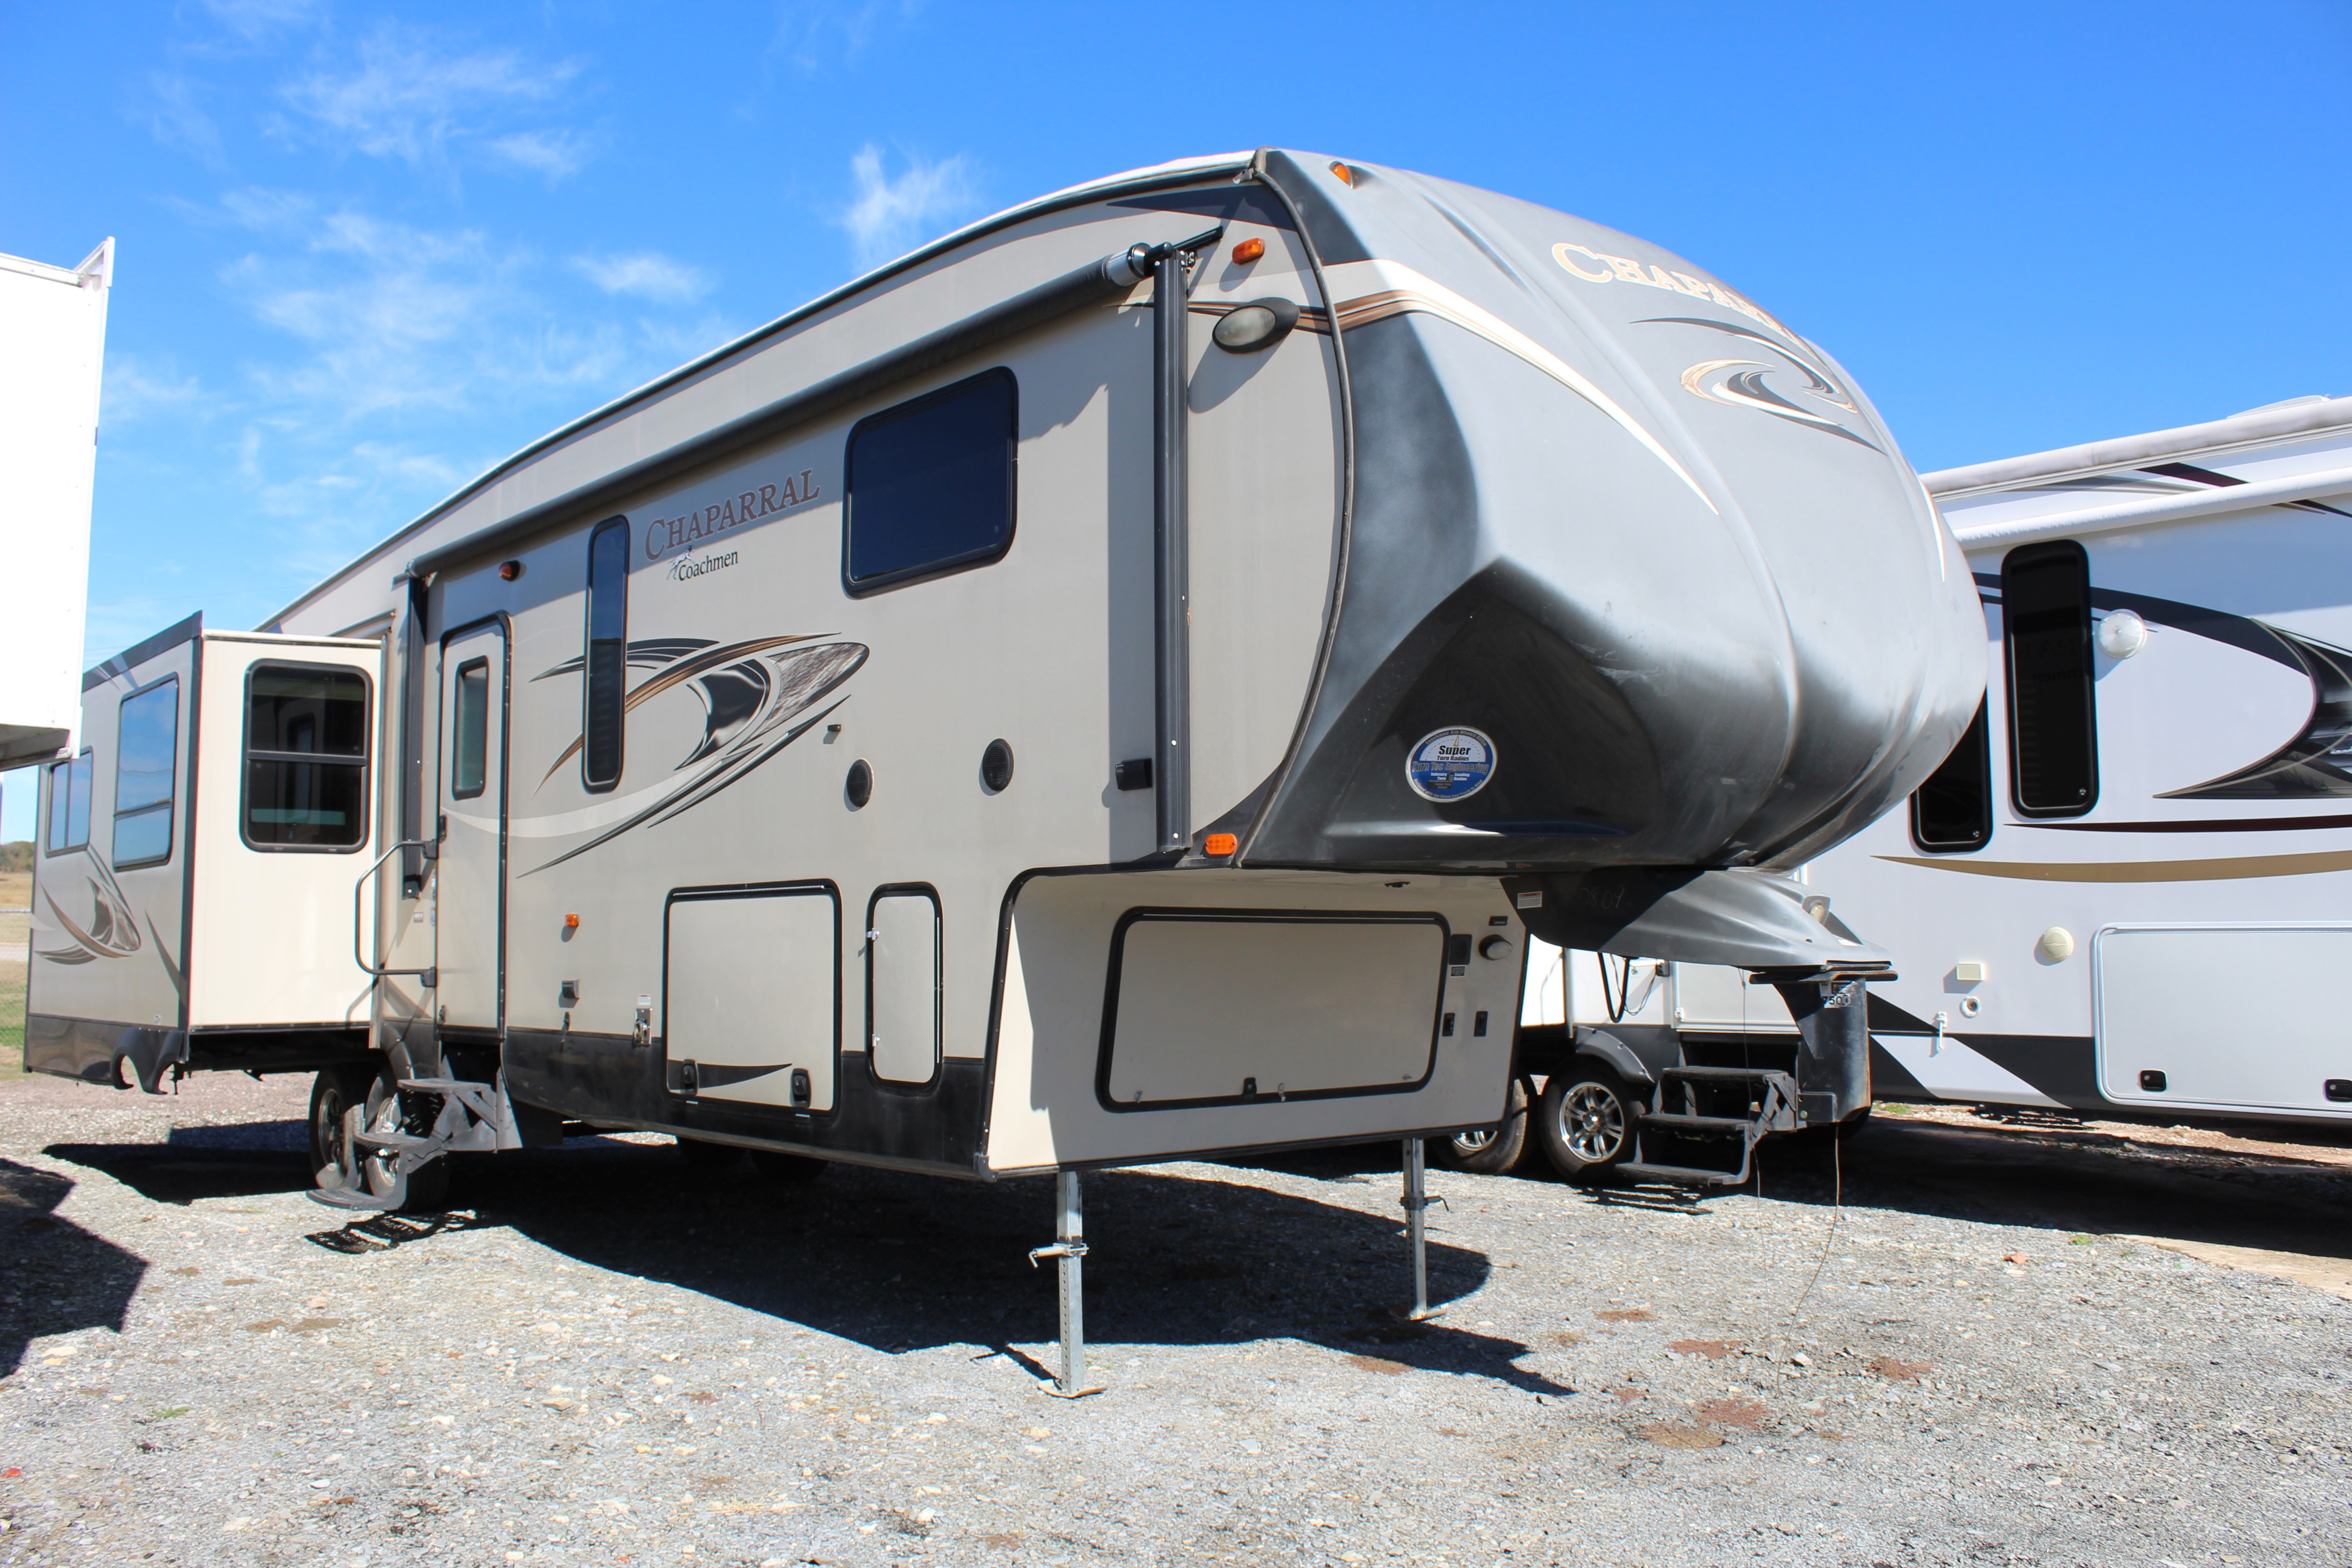 Used, 2015, Chaparral by Coachmen, 360IBL, Fifth Wheels